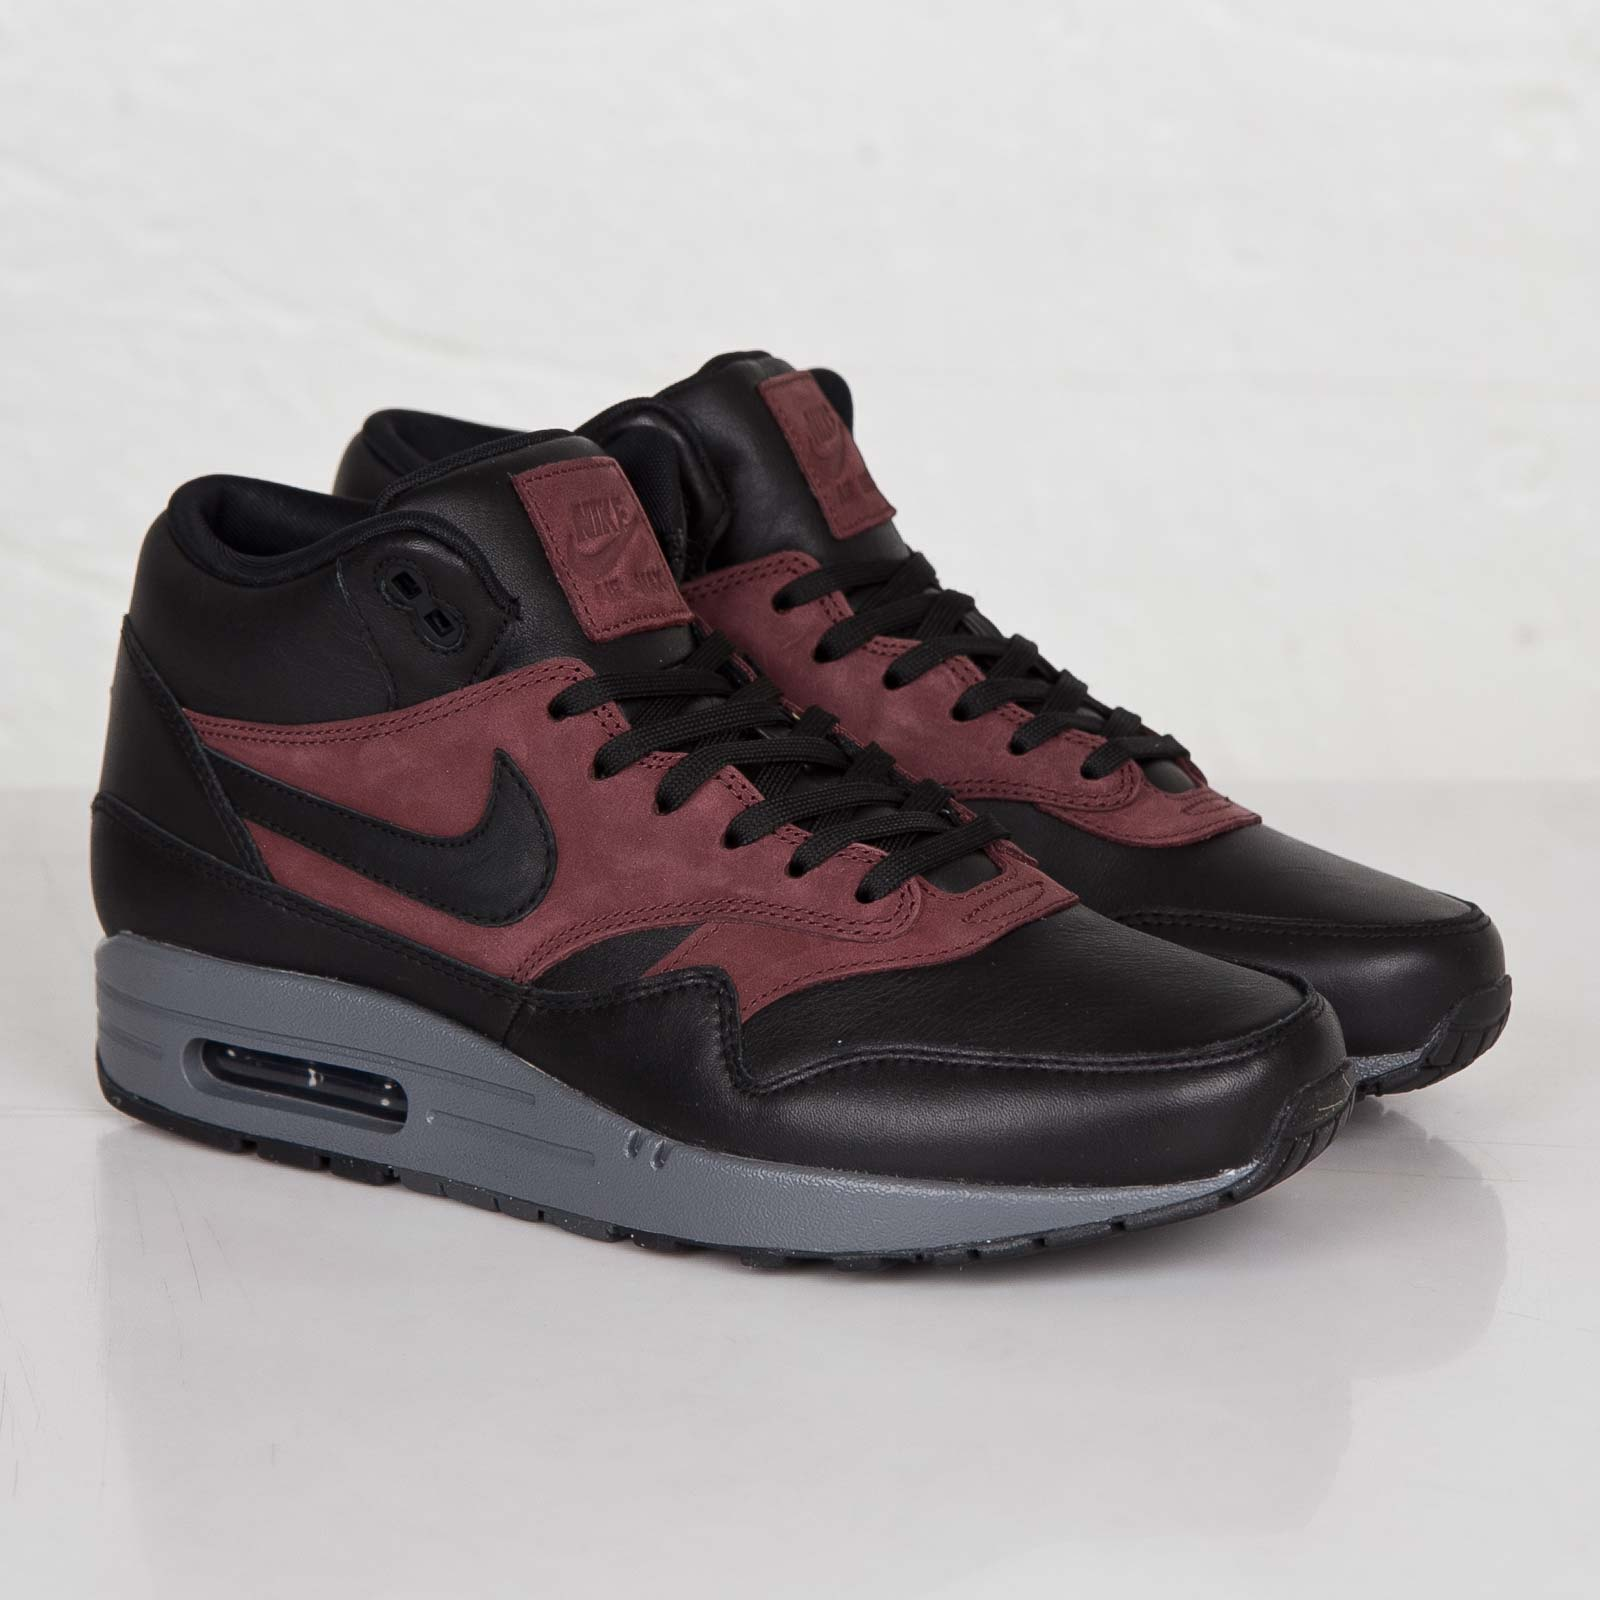 Nike Air Max 1 Mid Deluxe QS 726411 002 Sneakersnstuff